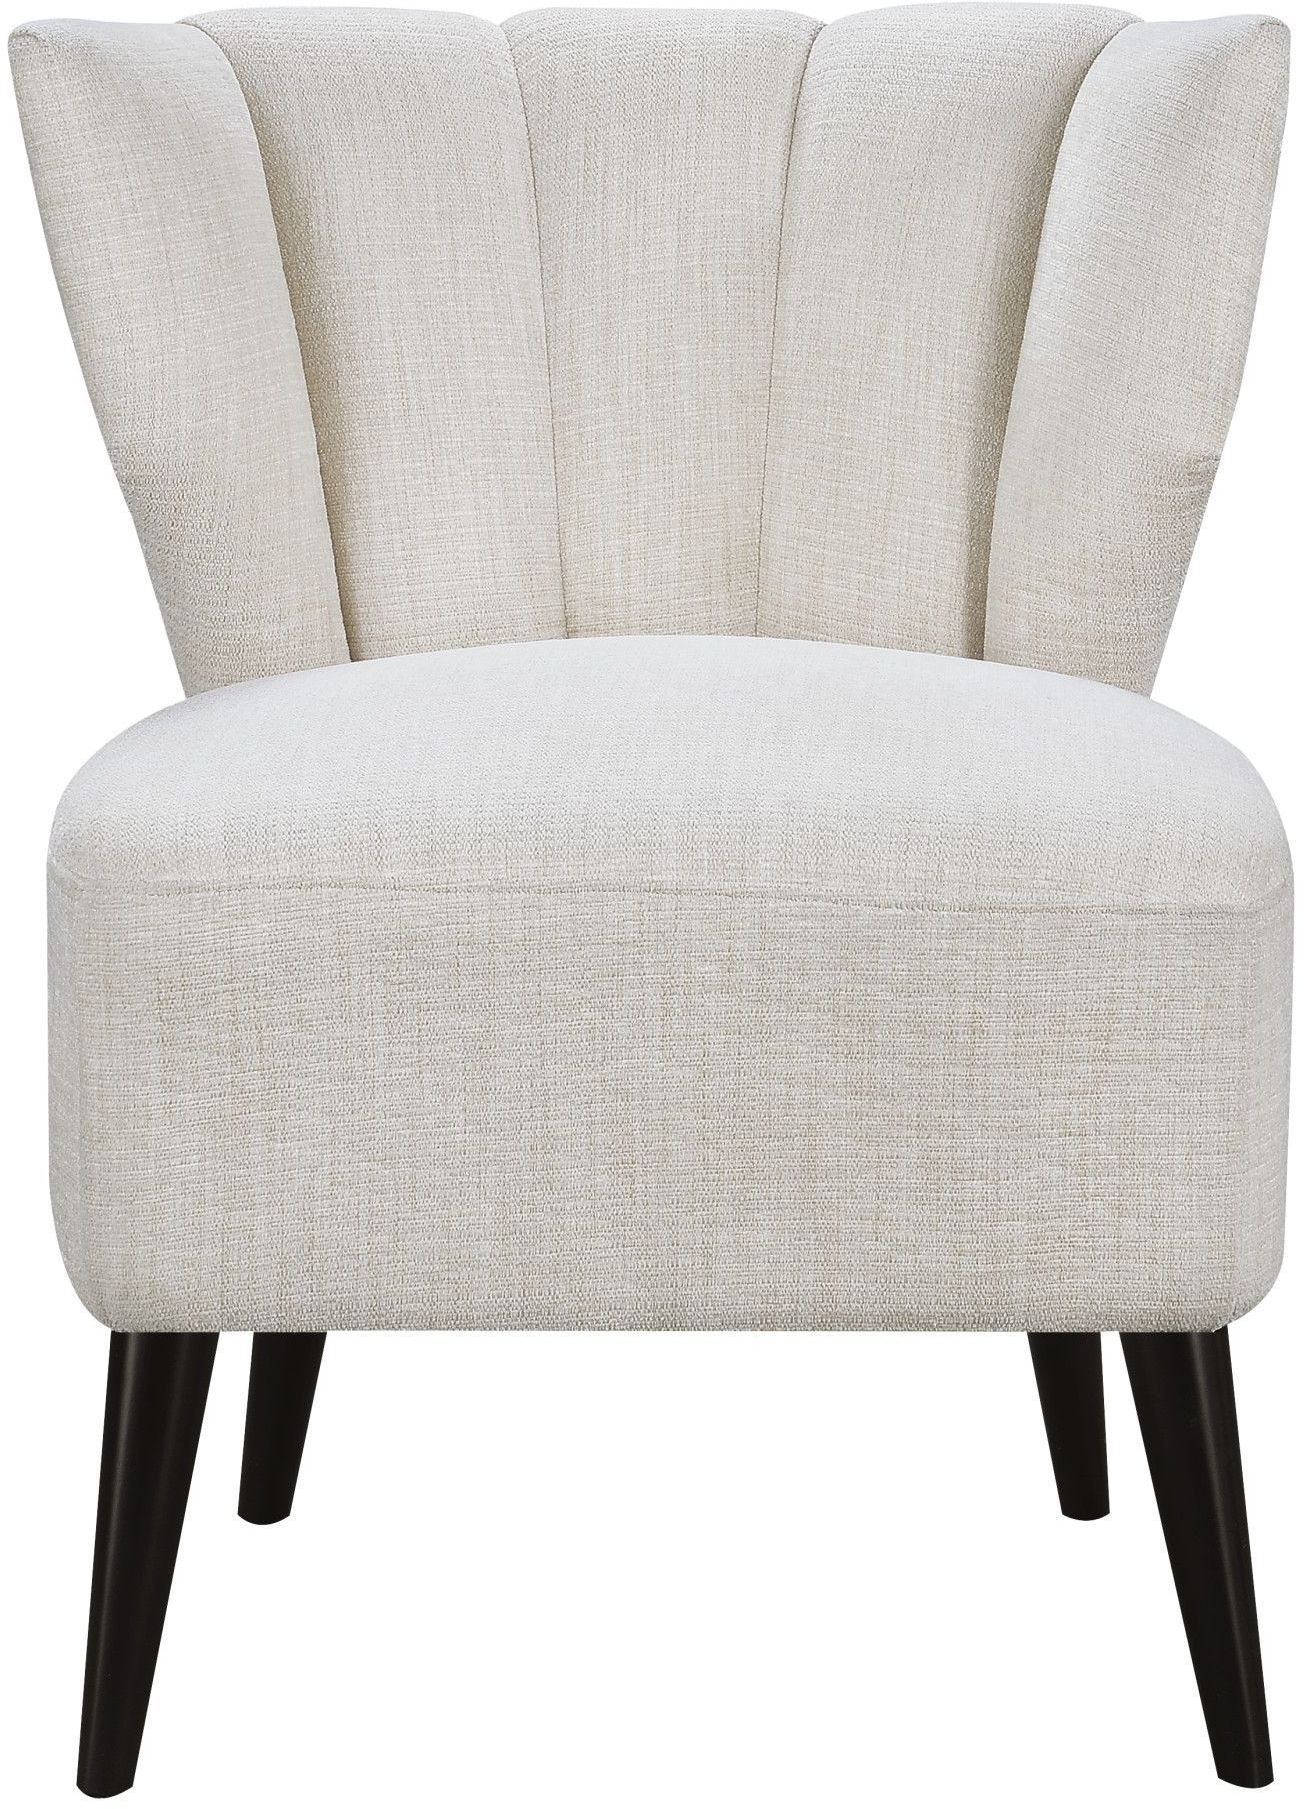 Cream Accent Chair Joelle Cream Accent Chair From Emerald Home Coleman